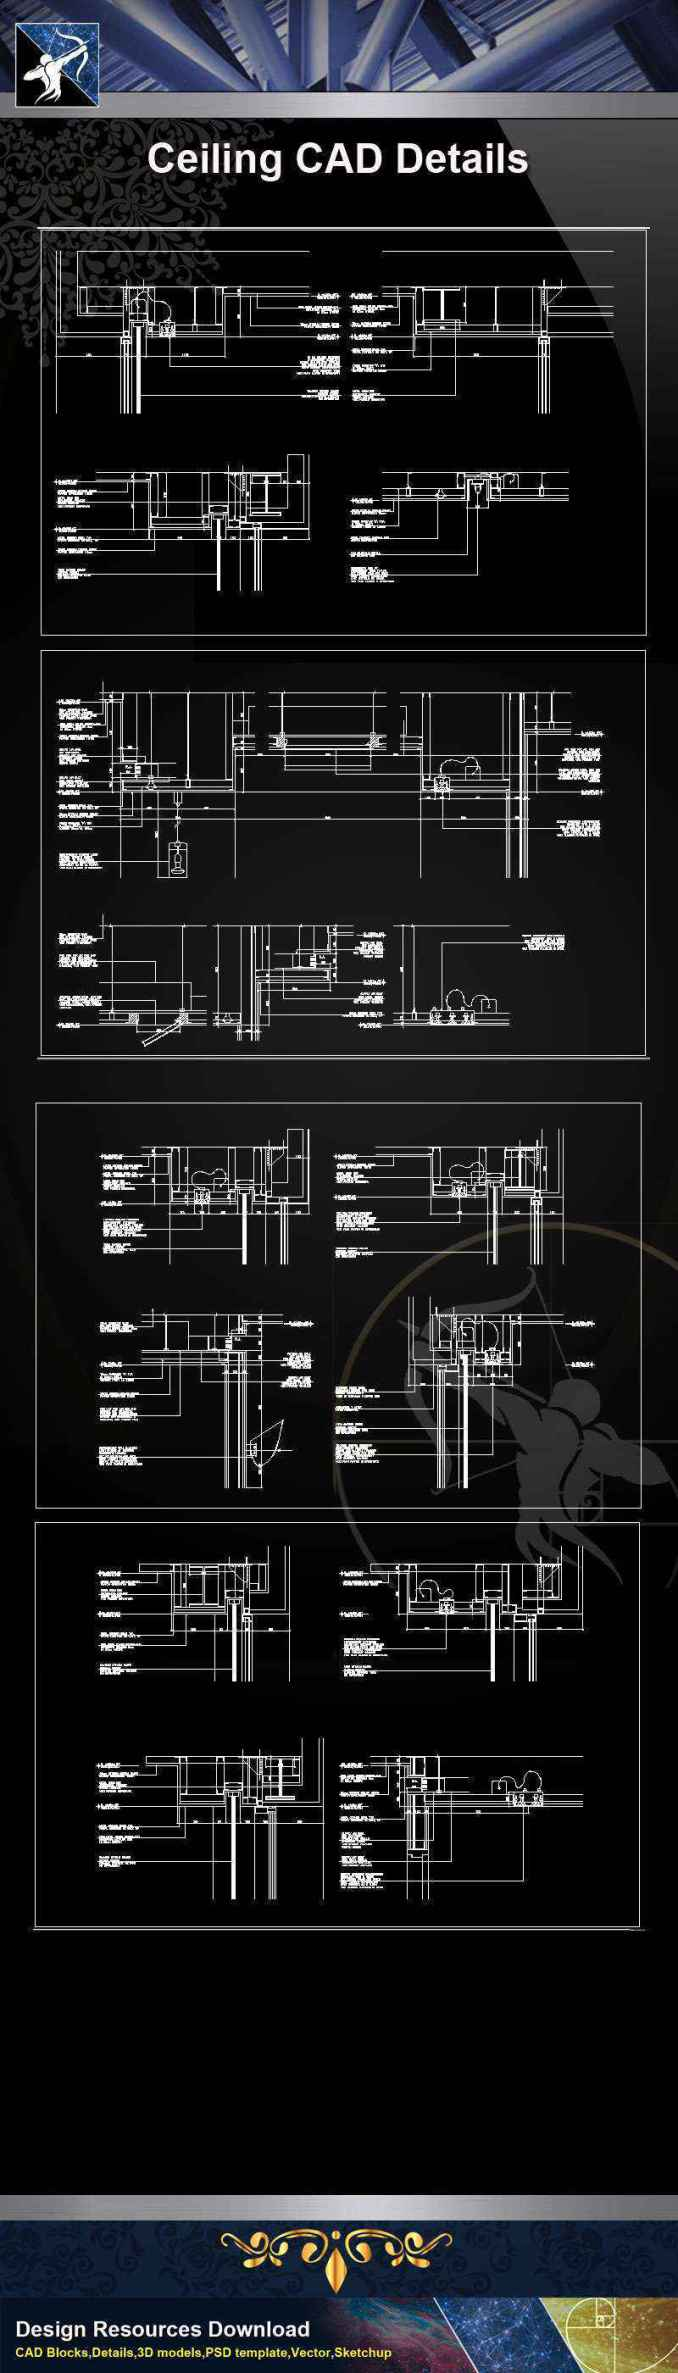 【Architecture CAD Details Collections】Ceiling Design CAD Details V.2